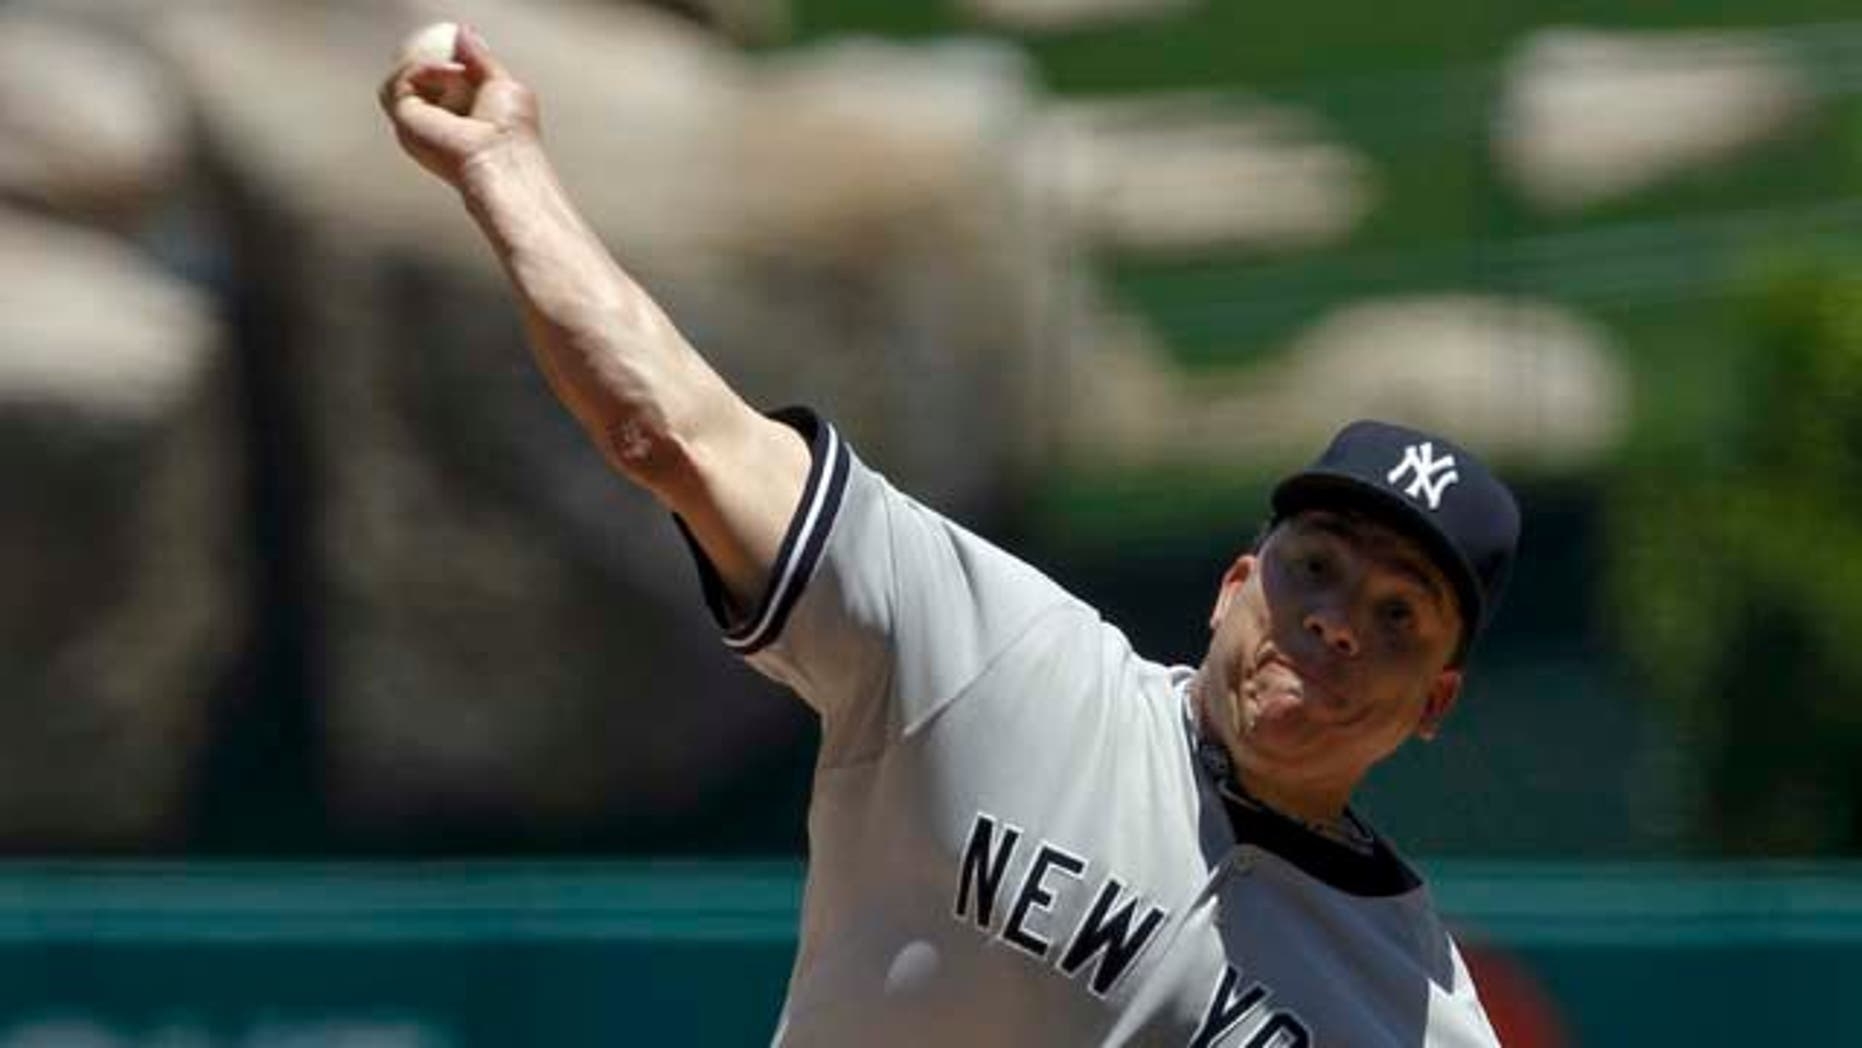 New York Yankees starting pitcher Bartolo Colon throws against the Los Angeles Angels during the first inning of a baseball game, Sunday, June 5, 2011, in Anaheim, Calif. (AP Photo/Chris Carlson)